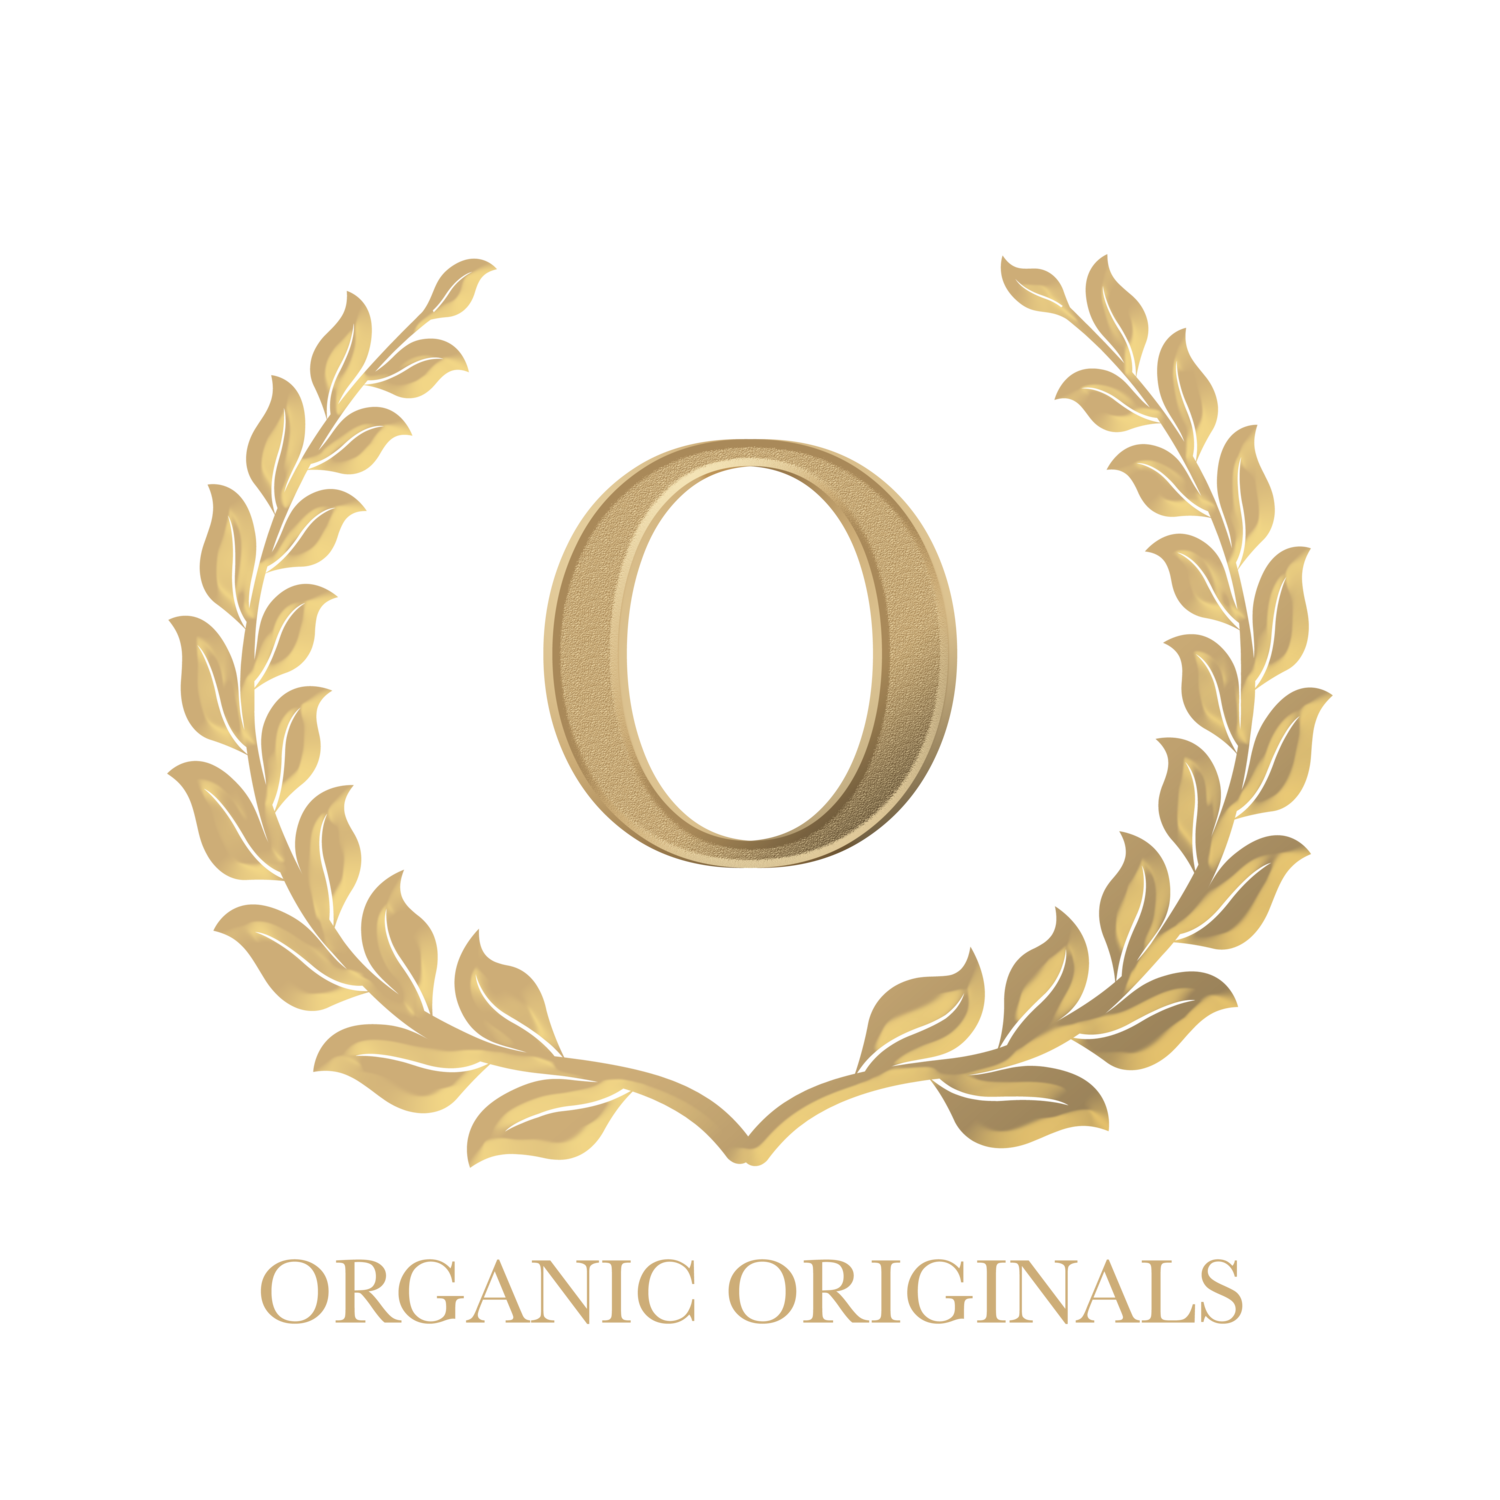 Organic Originals Productions